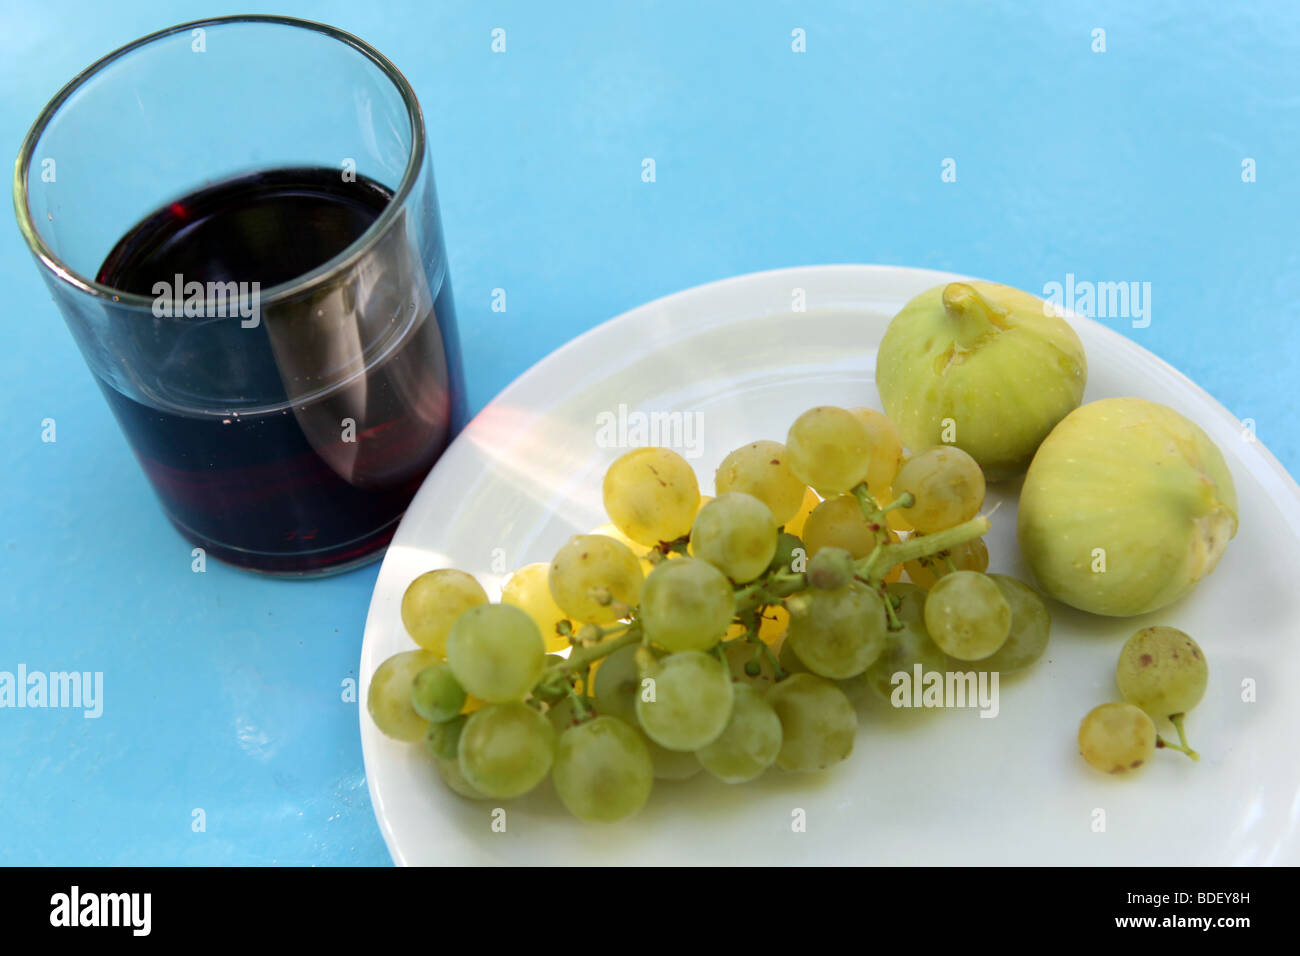 A Greek snack of red wine with a plate of grapes and figs on a blue table. - Stock Image